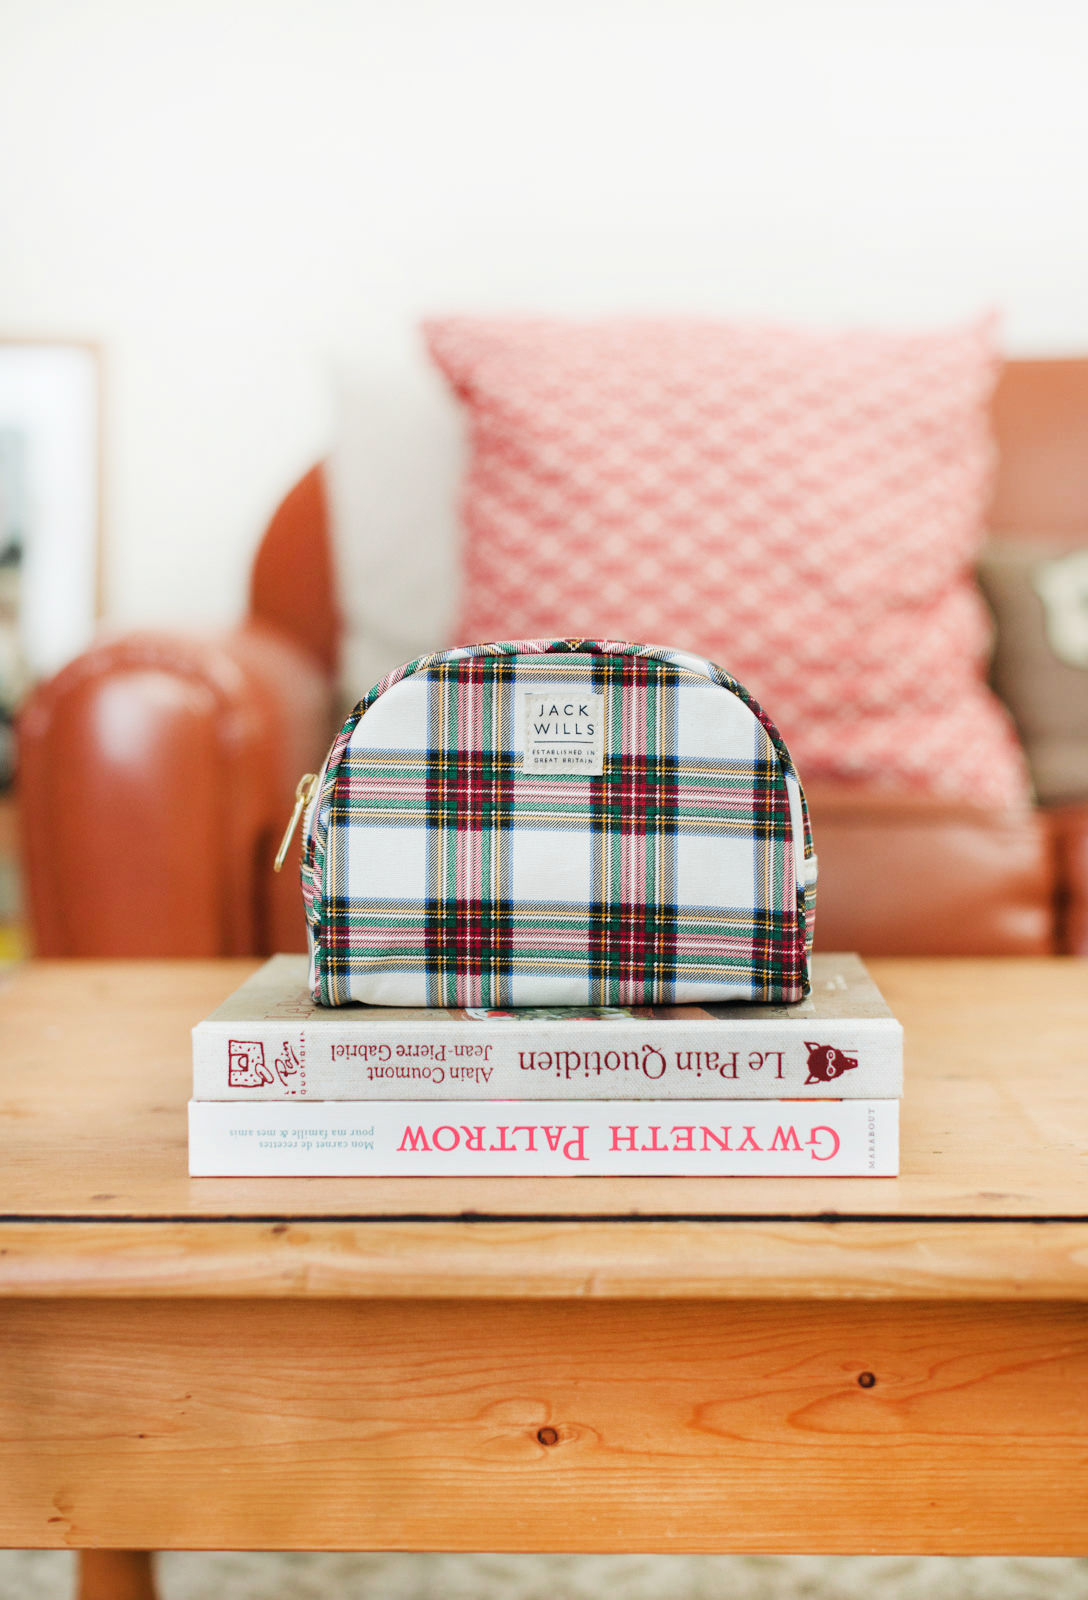 Blog-Mode-And-The-City-Lifestyle-Cadeaux-Noel-2016-4